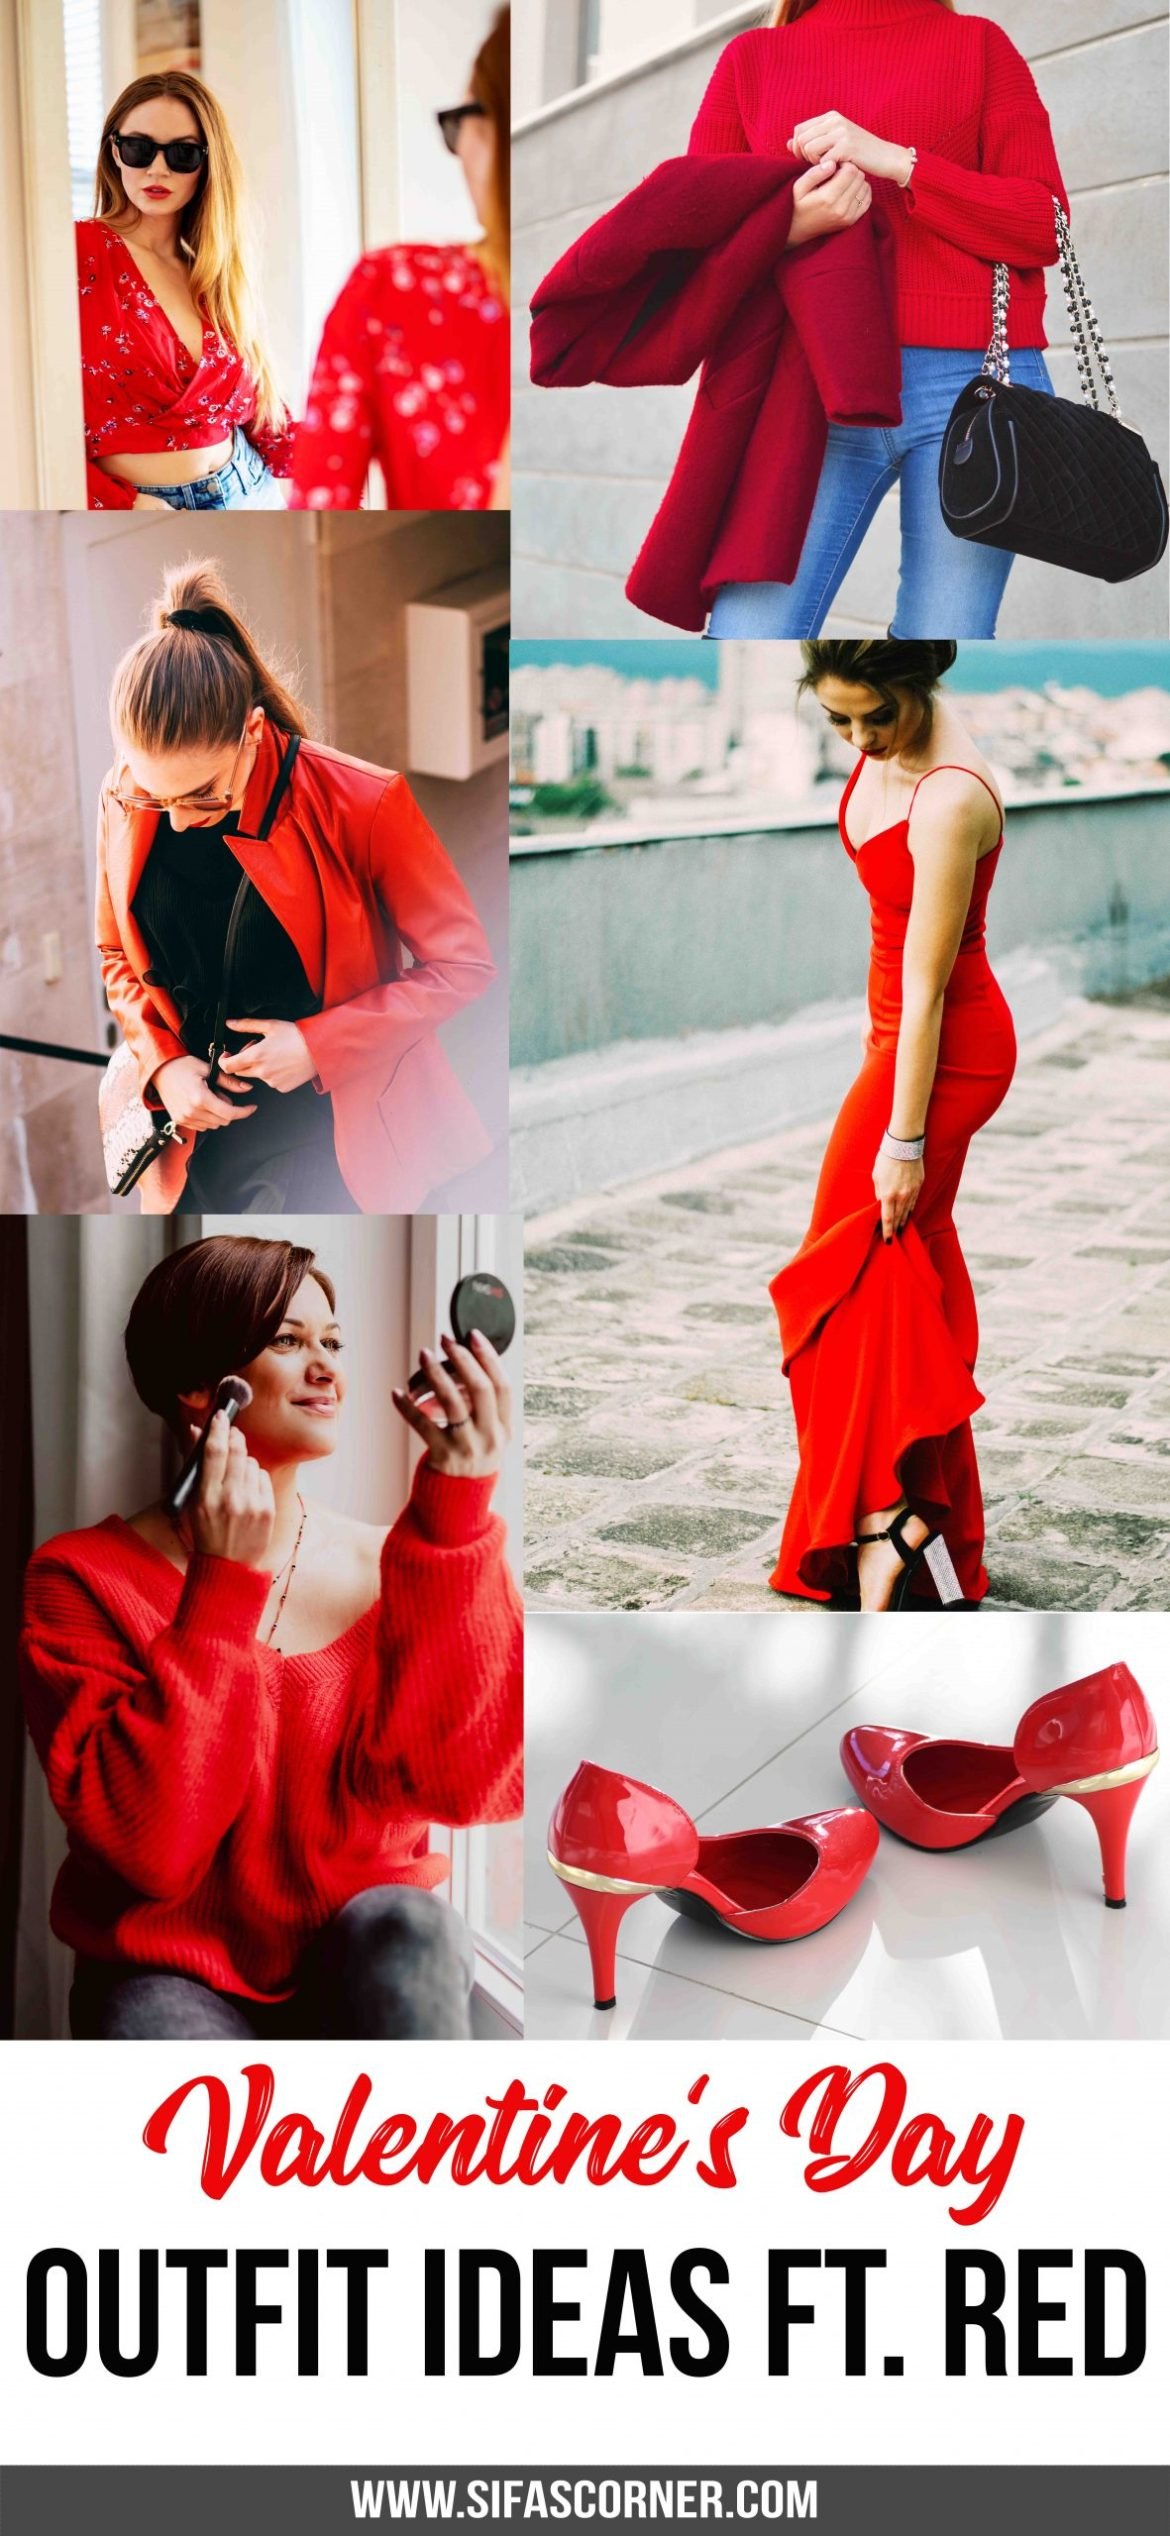 Red Outfit Ideas for Valentine's Day